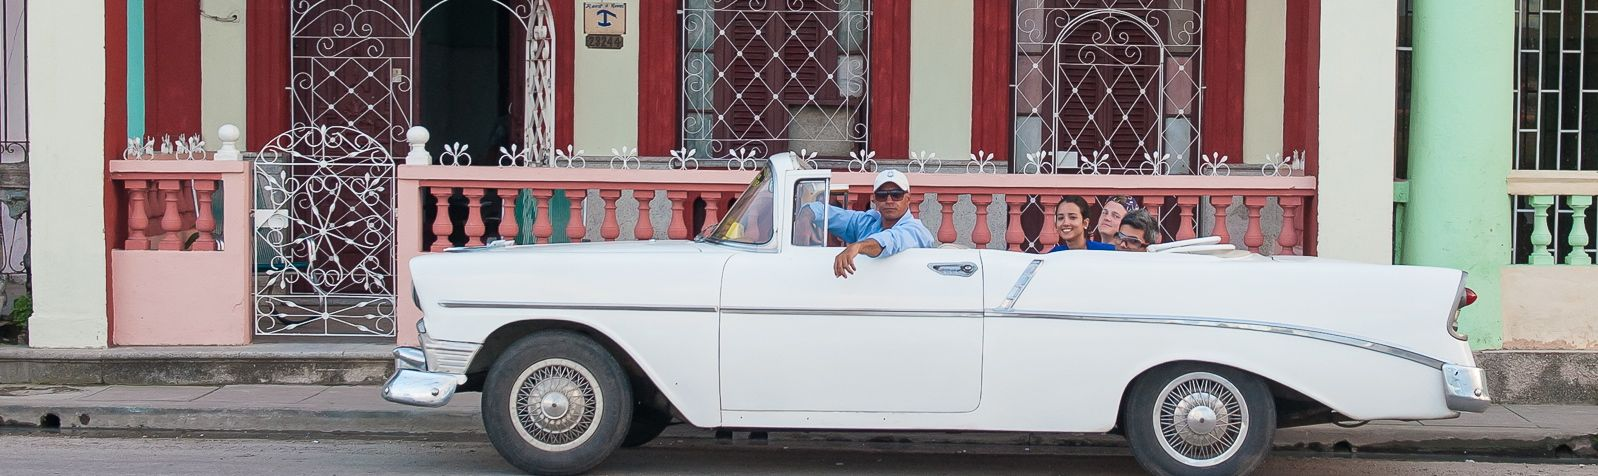 Take a ride in a Classic Car with the Havana Tour Company